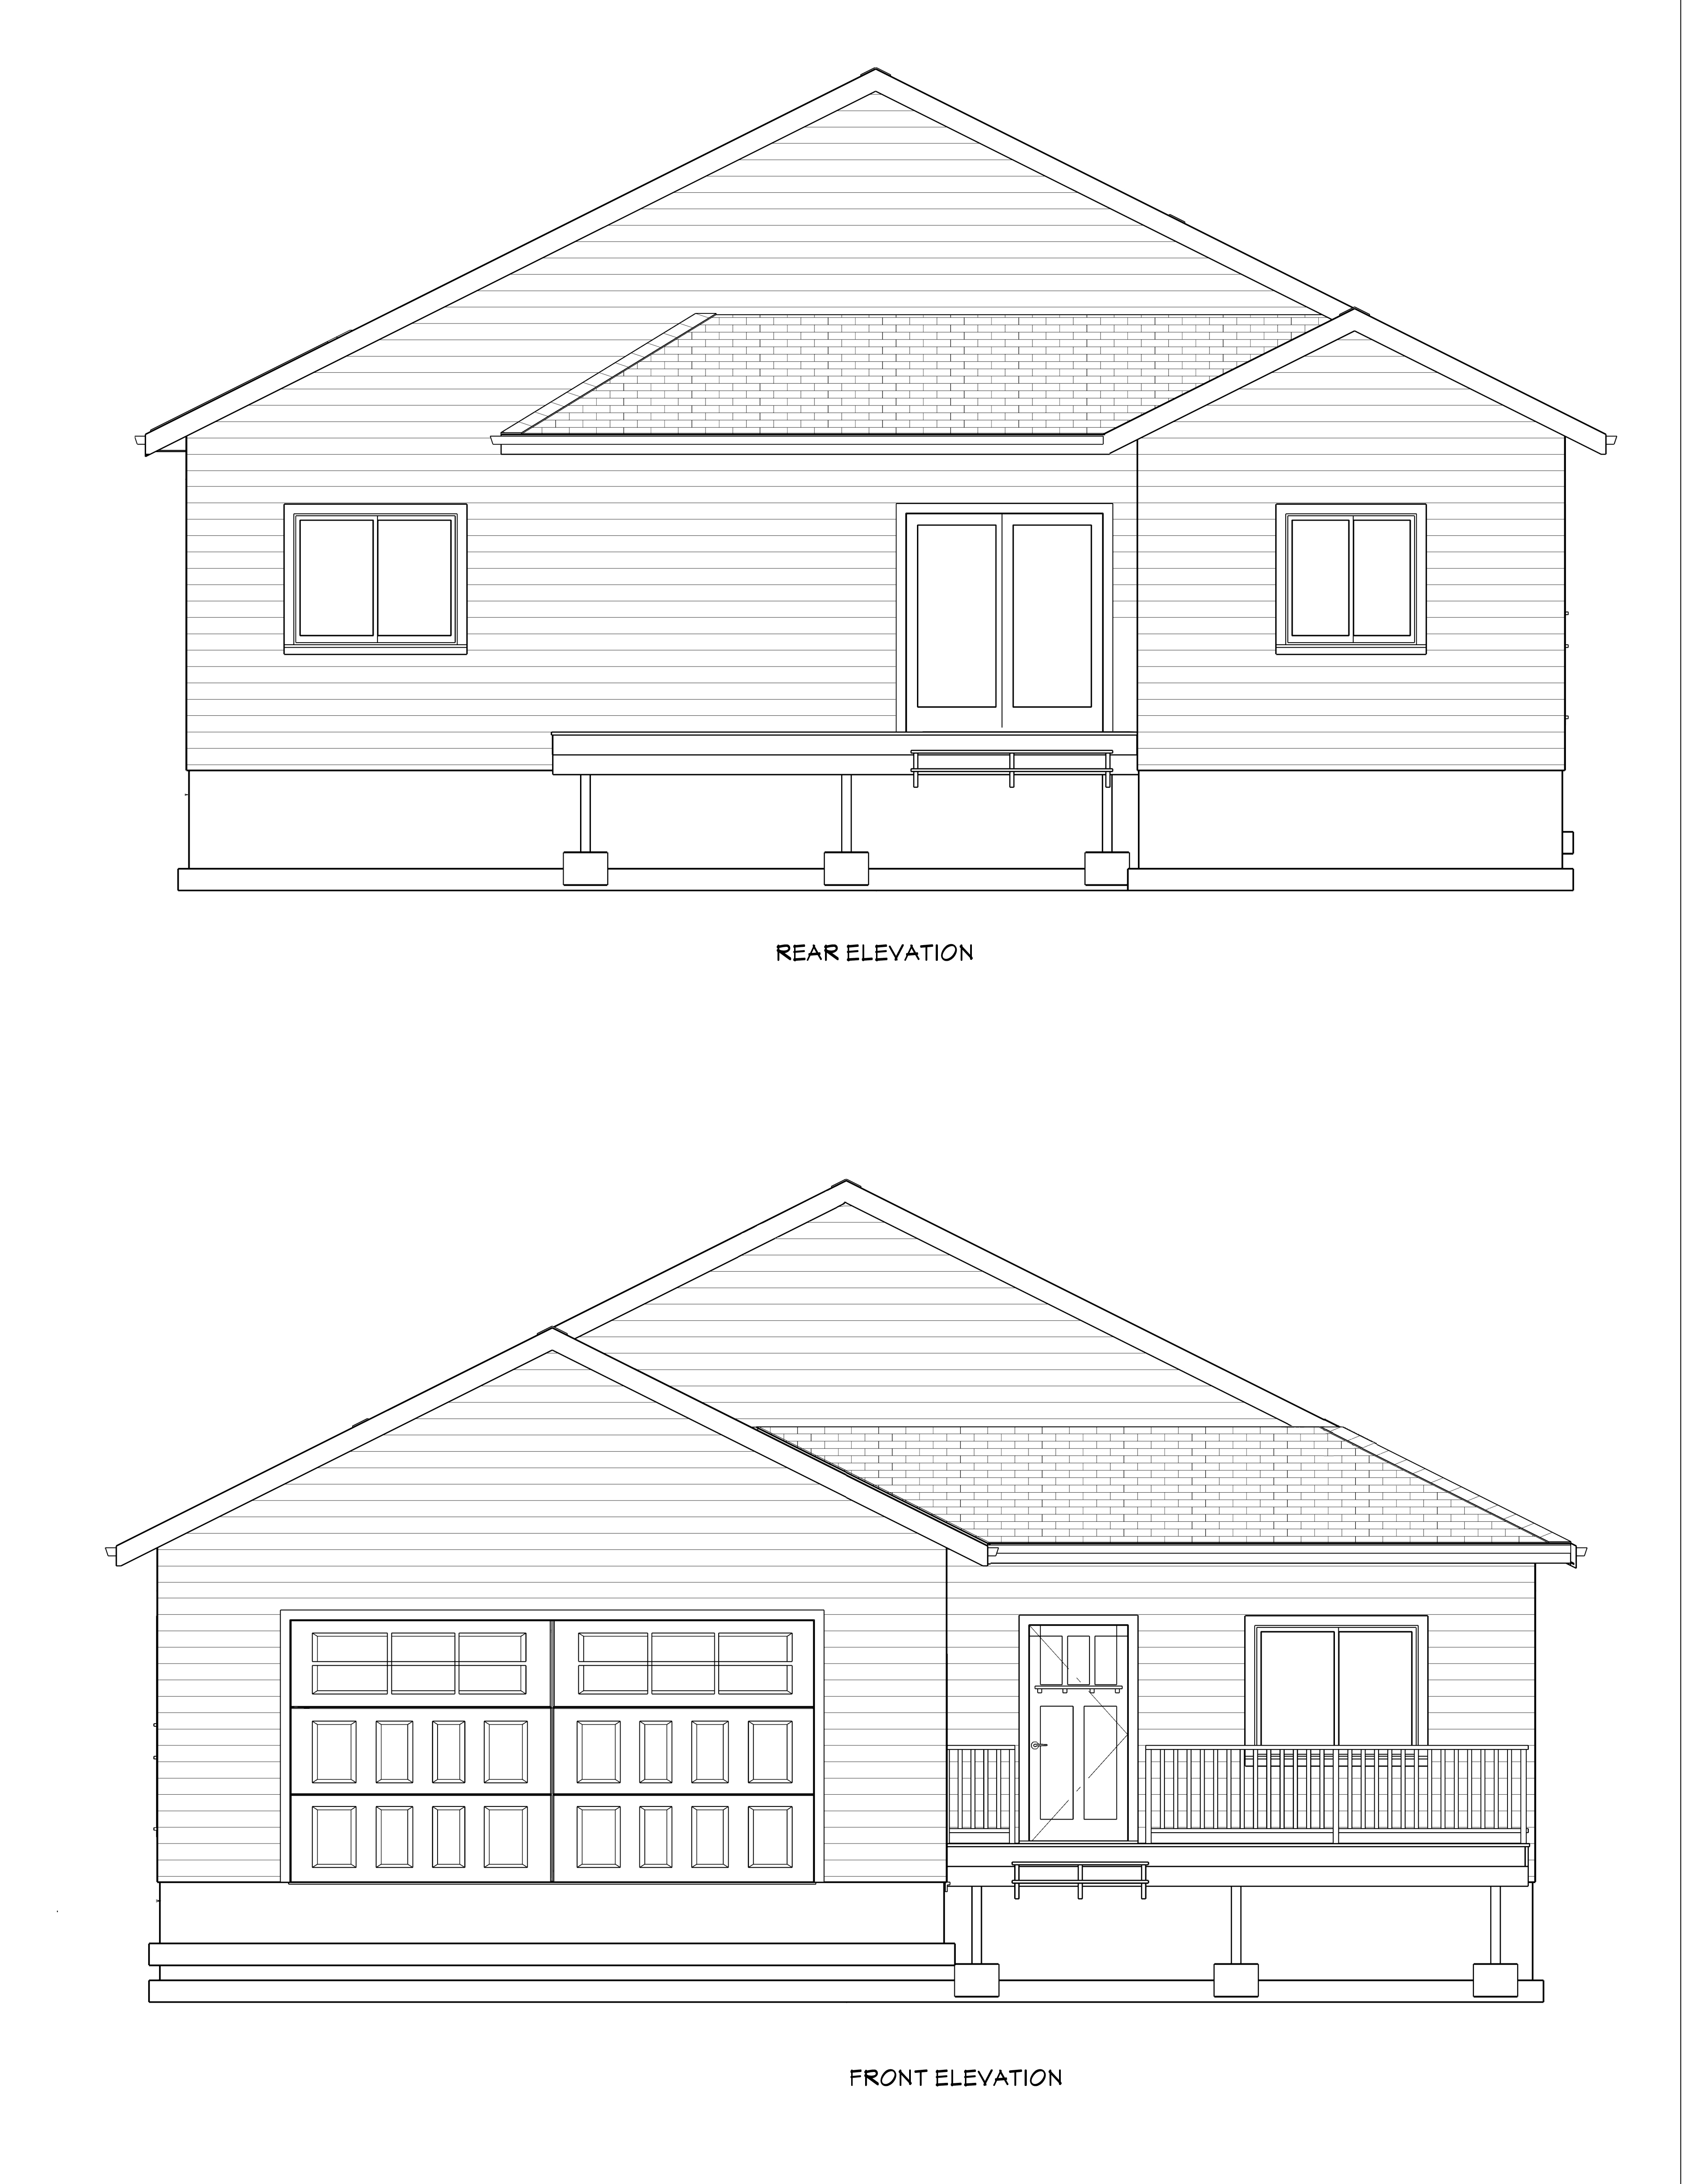 Lot 4 Emerald Estates(1348 sq ft)Fornt & rear elevations and wal